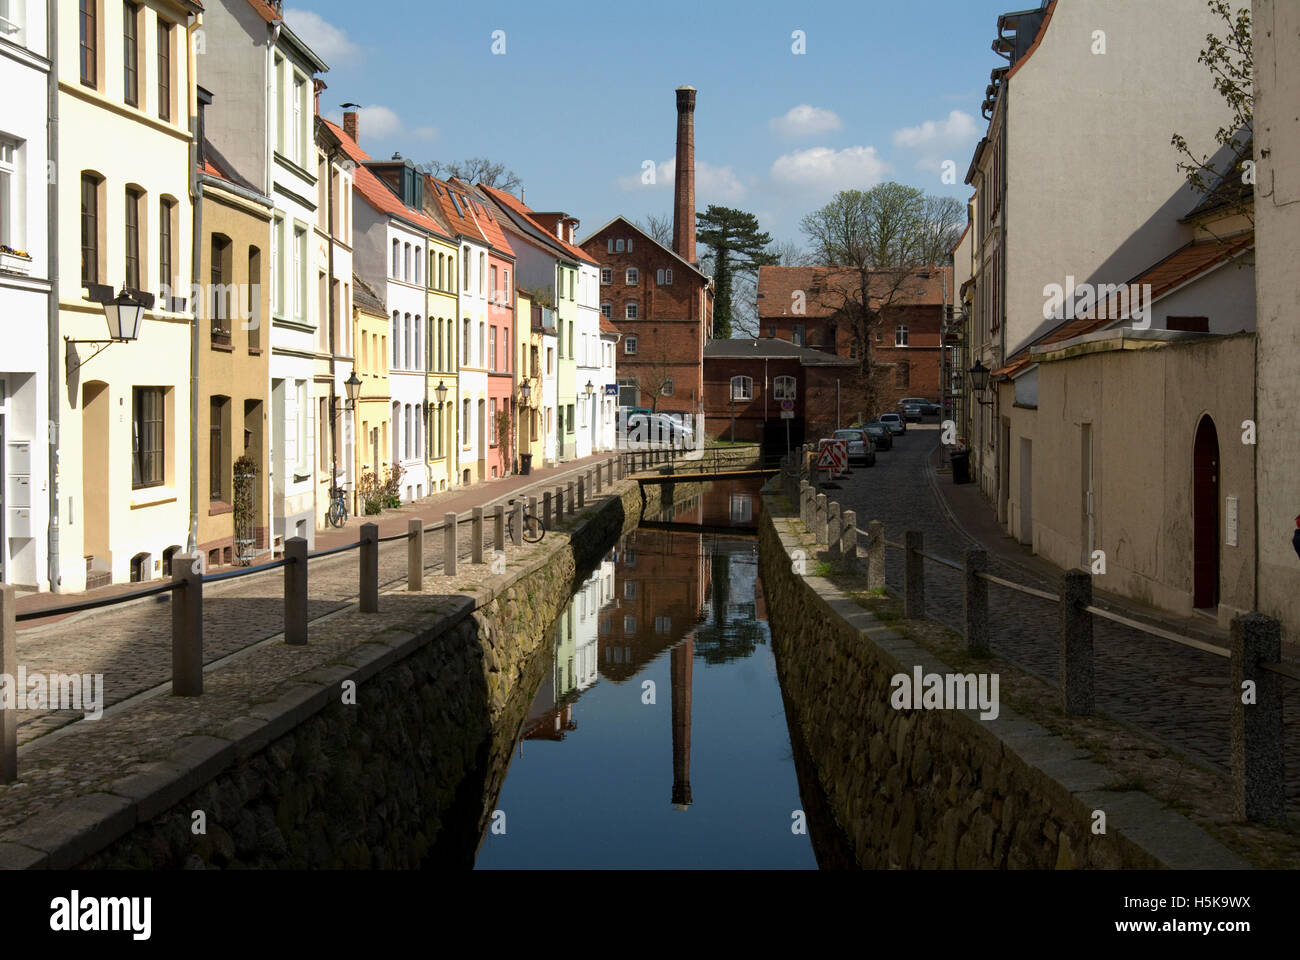 Historic buildings, Wismar, Mecklenburg-Western Pomerania - Stock Image